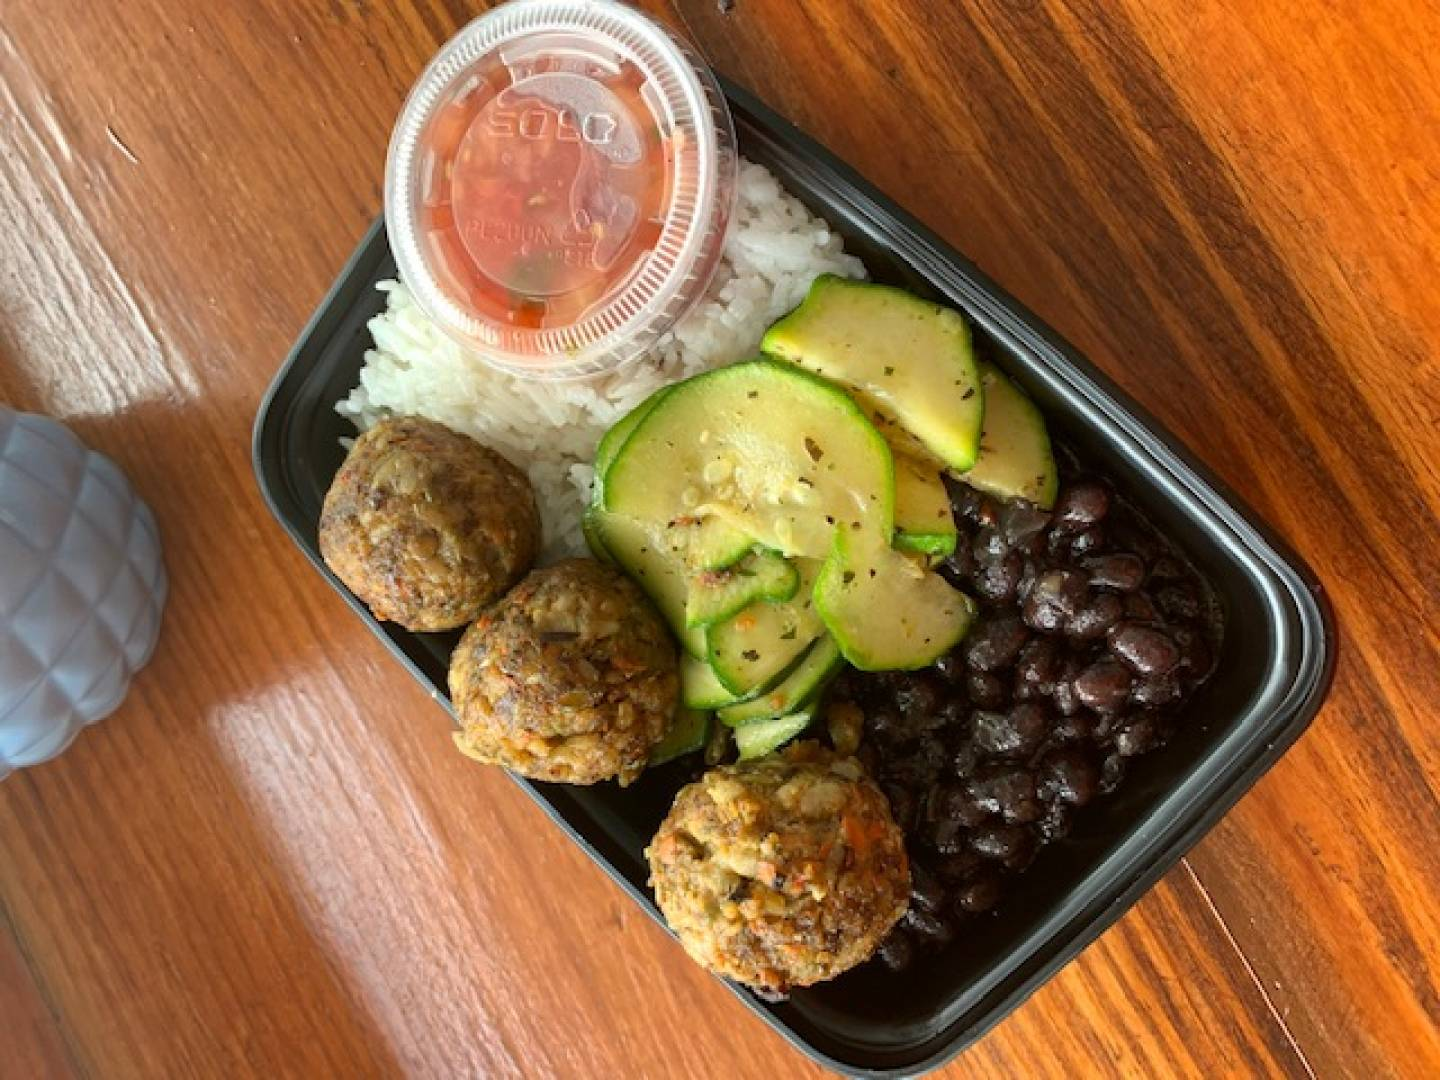 Organic Vegan Meatballs, Jasmine Rice, Black Beans and Zucchini